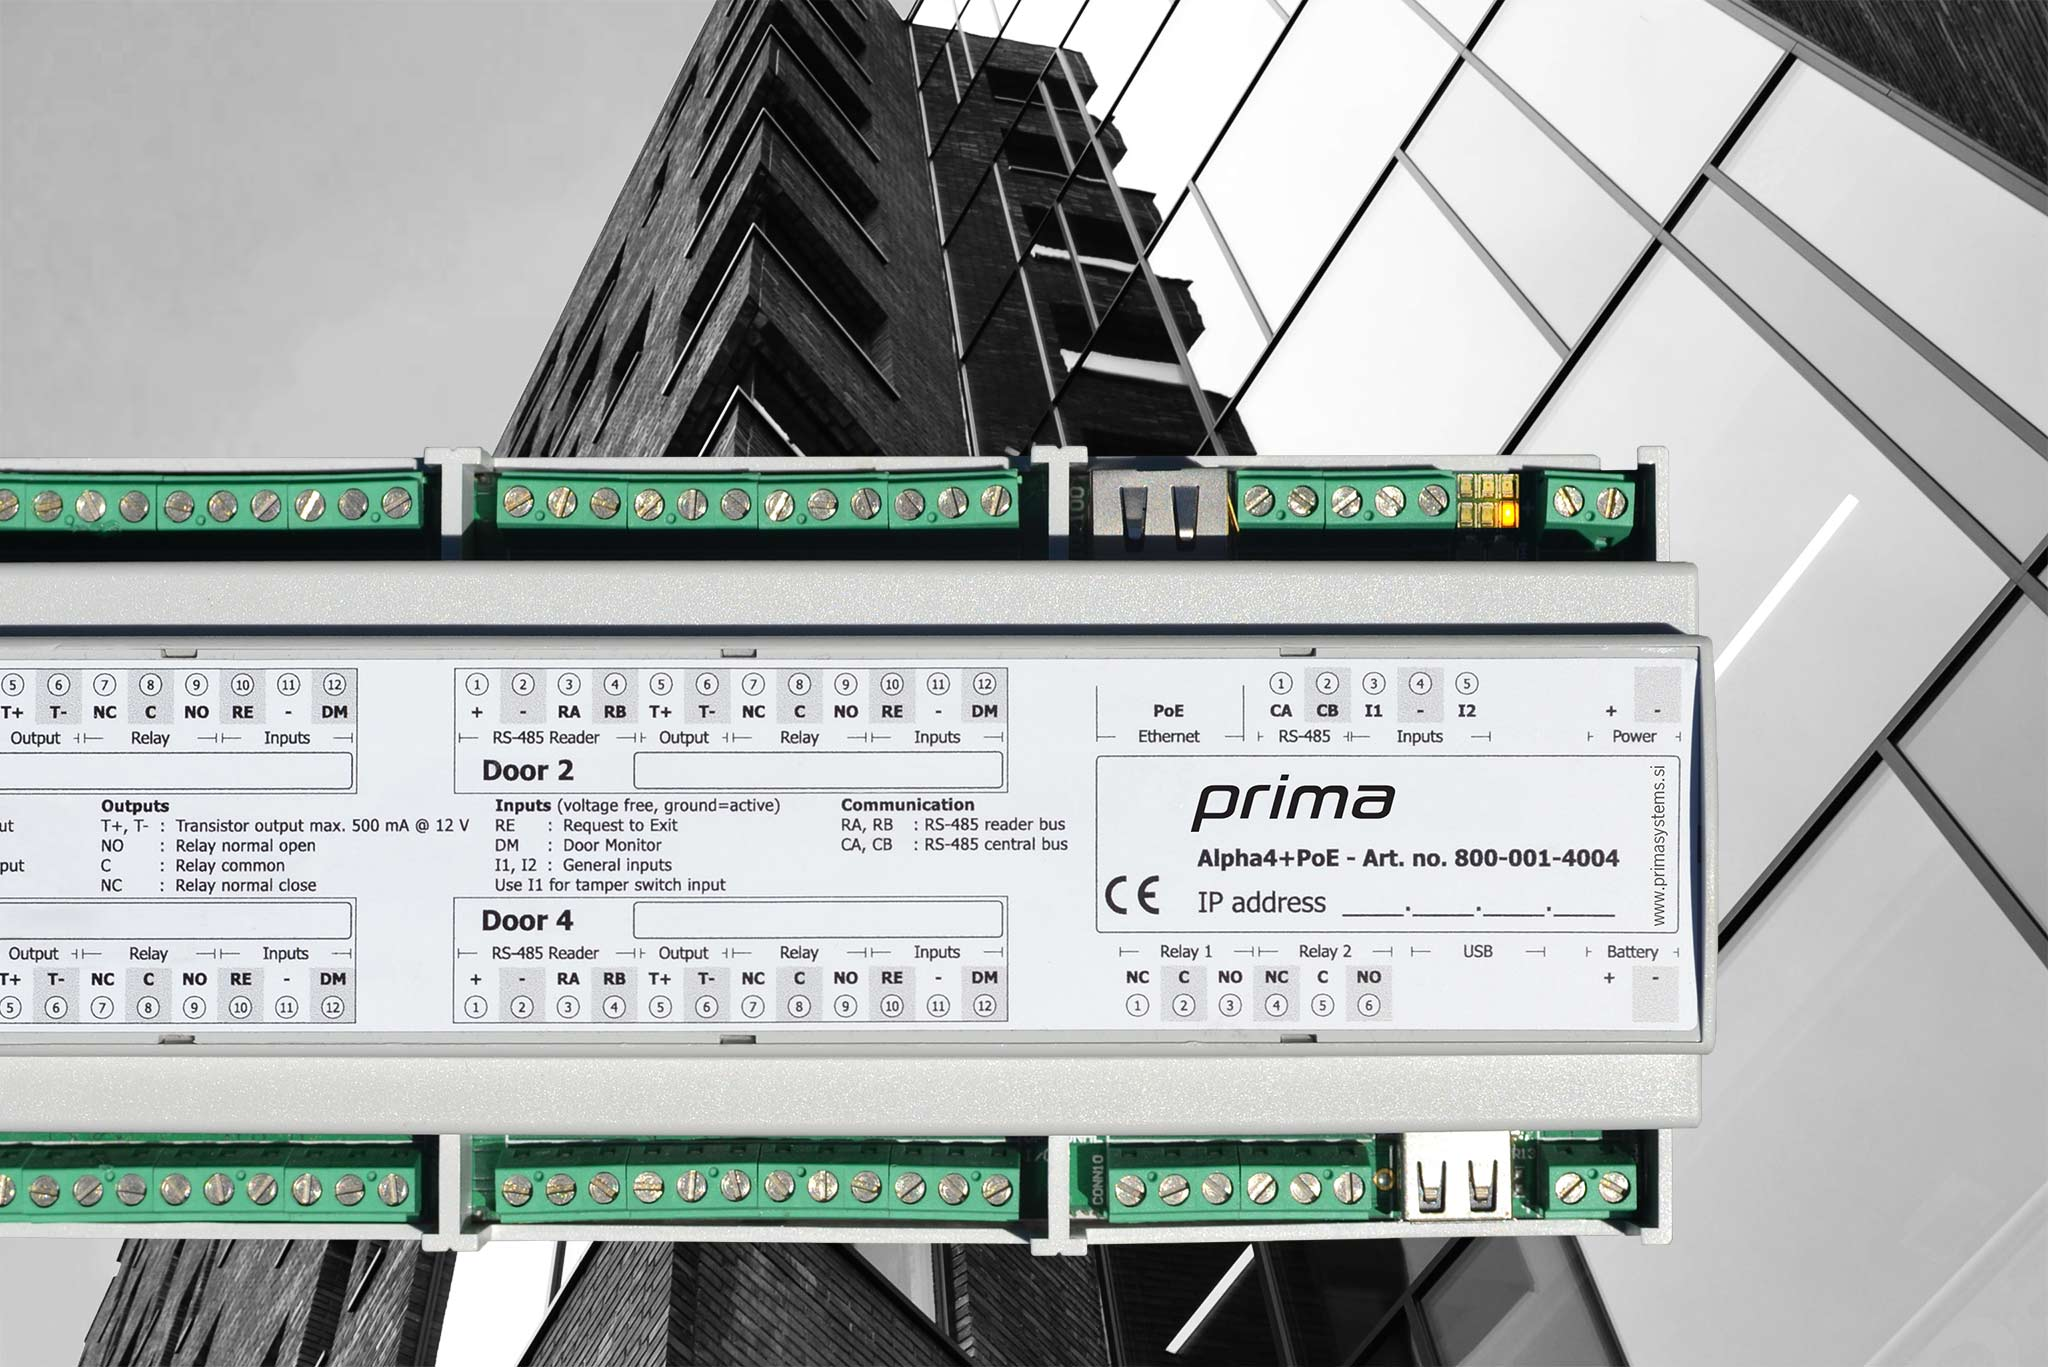 alpha prima - FlexAir® – Connects everything in one system